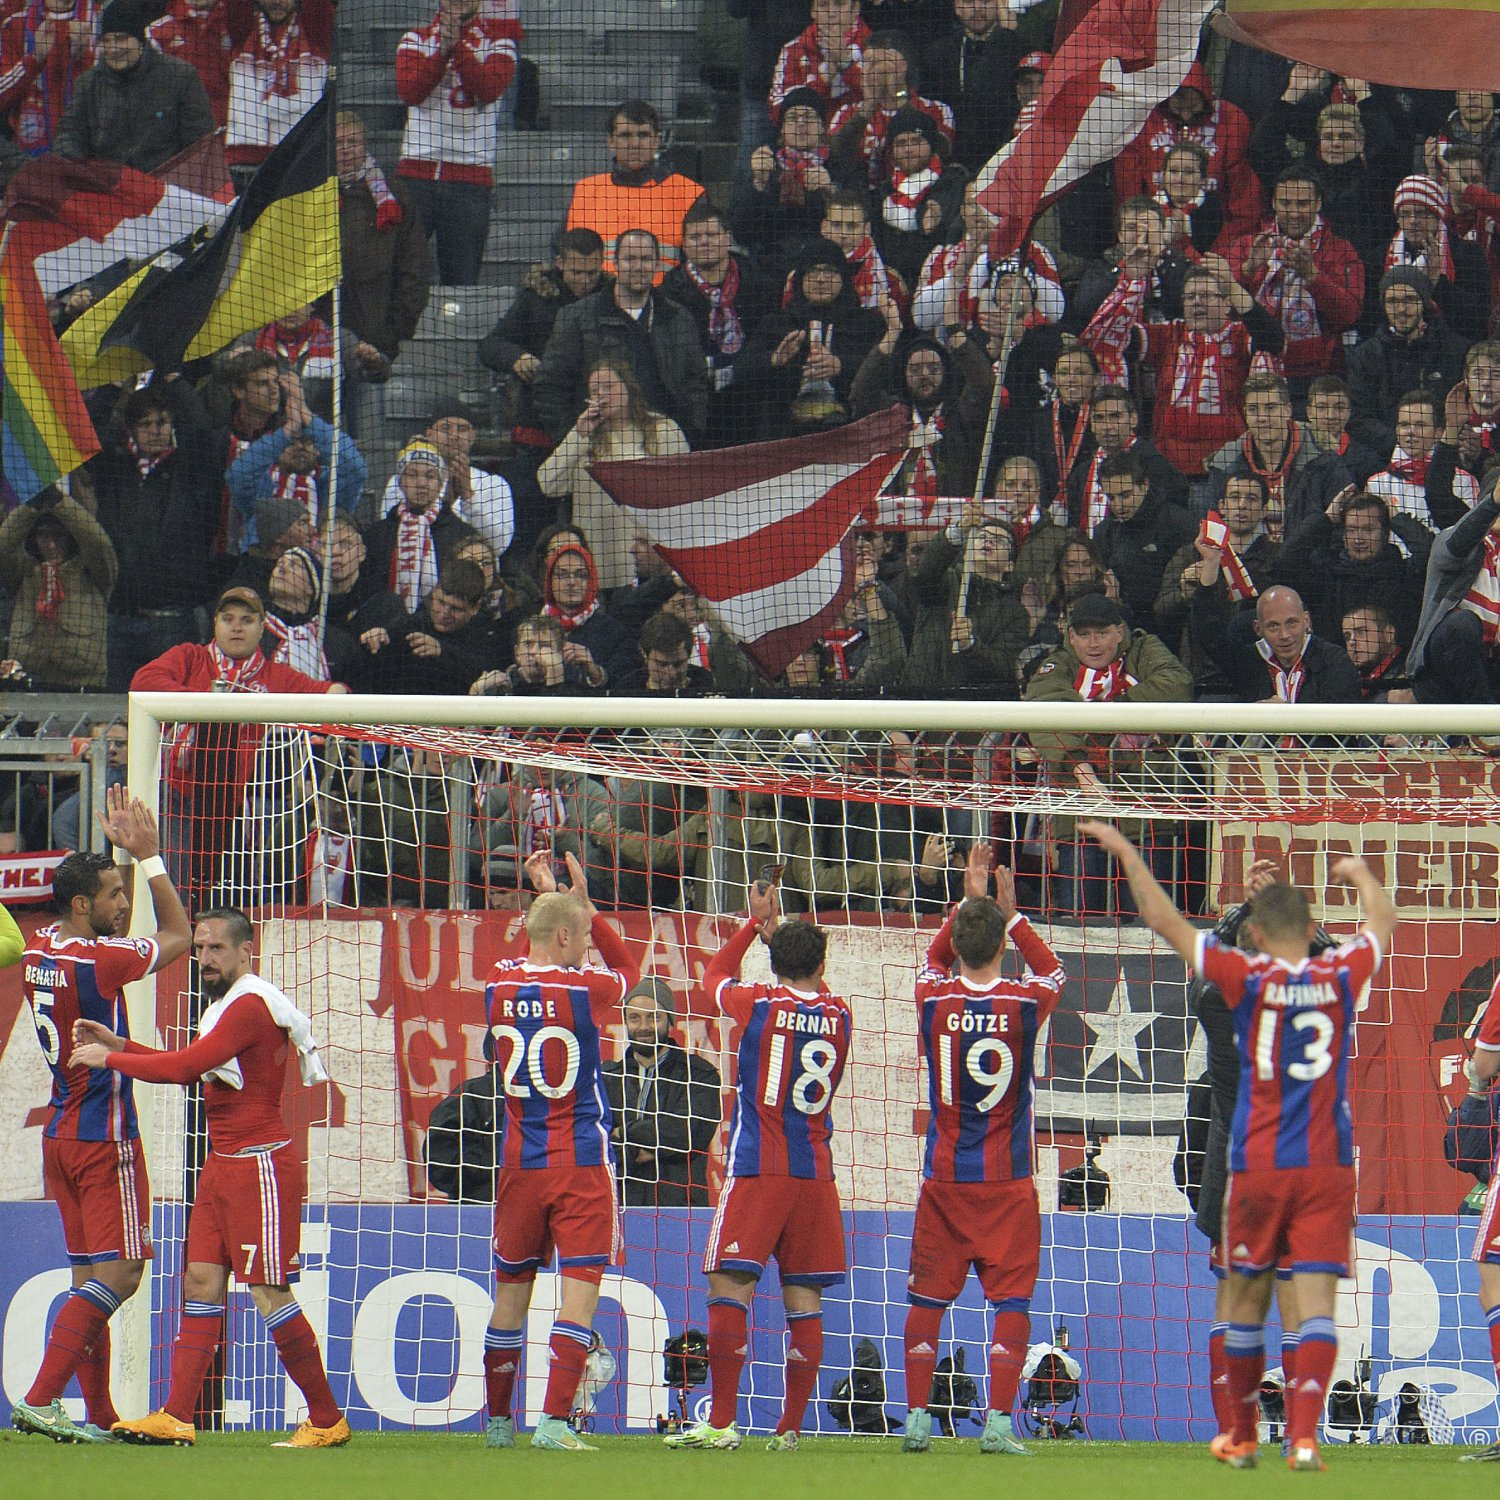 Liverpool 4 0 Borussia Dortmund Match Report Philippe: Champions League Tables 2014: Updated Group Standings